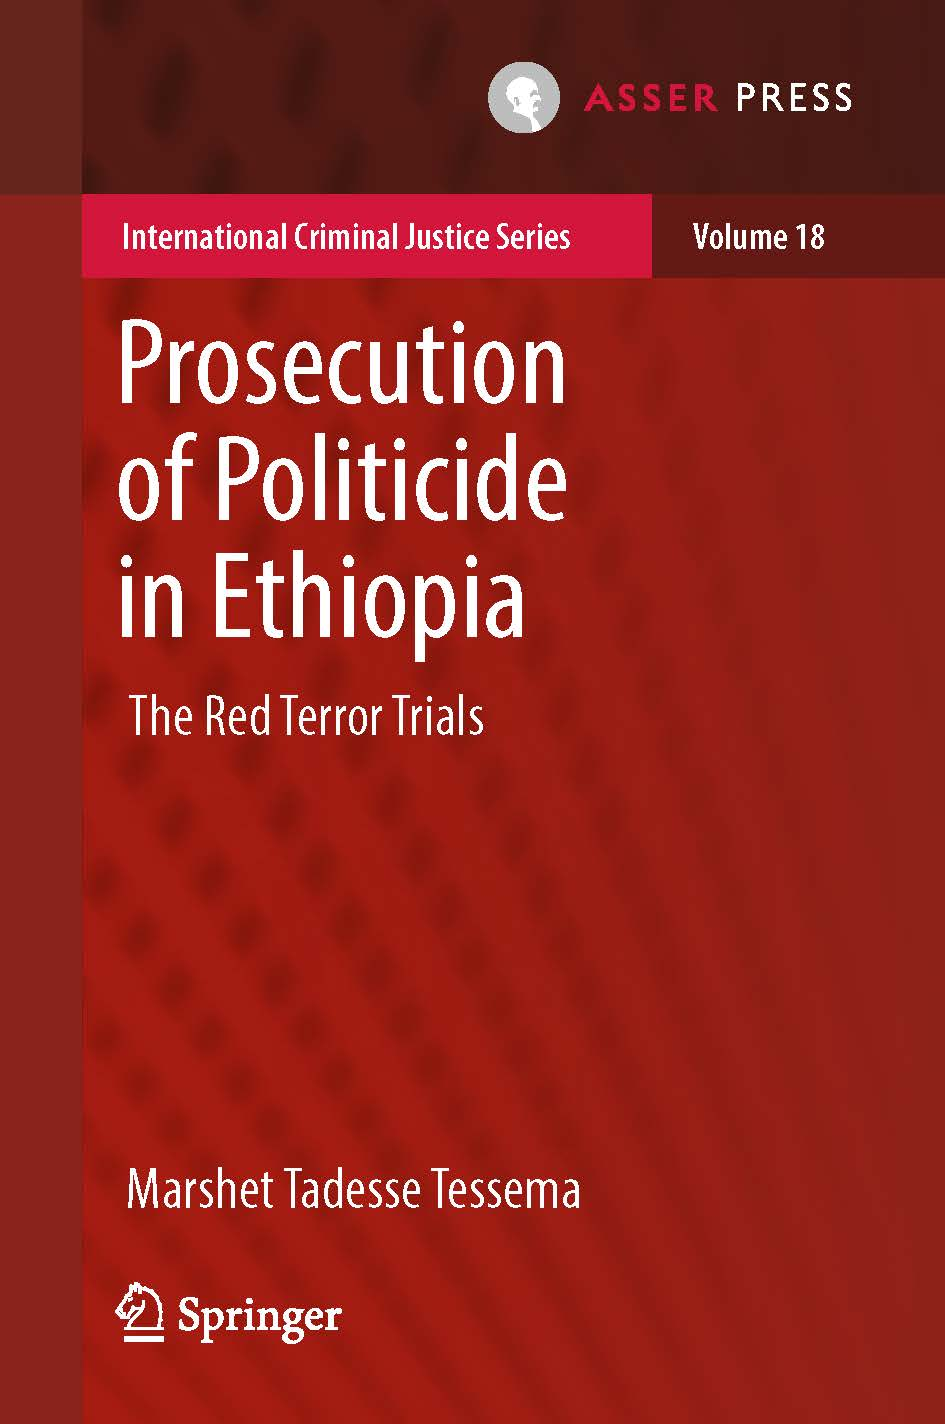 Prosecution of Politicide in Ethiopia - The Red Terror Trials